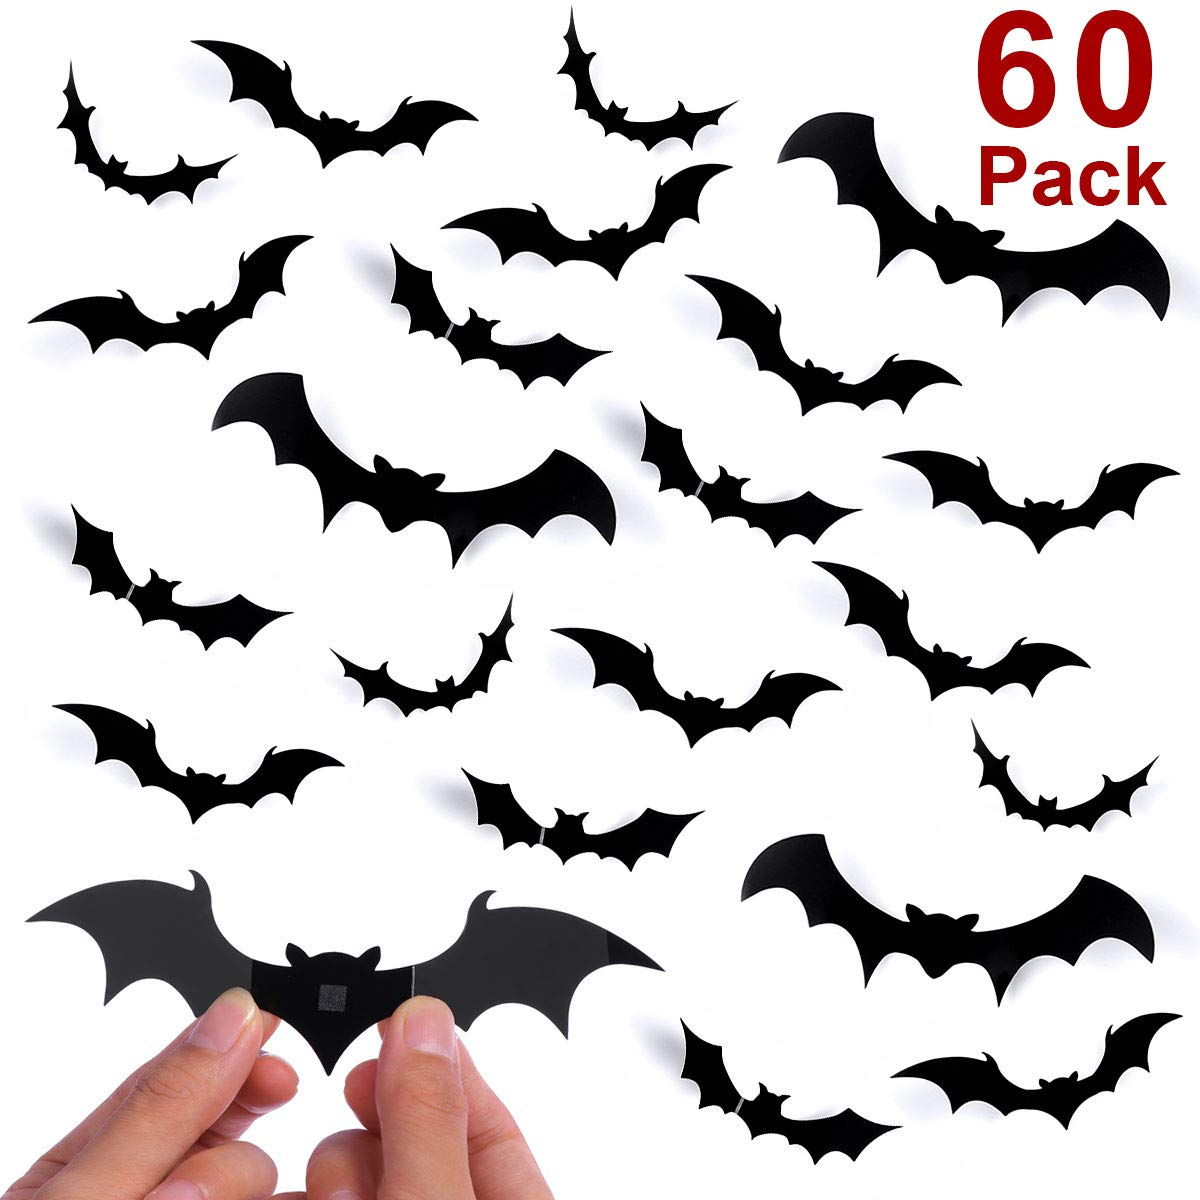 Unomor Halloween Decorations Bat Wall Decorations 60PCS 3D Bat Wall Decal Halloween Home Window Decorations--4 Size